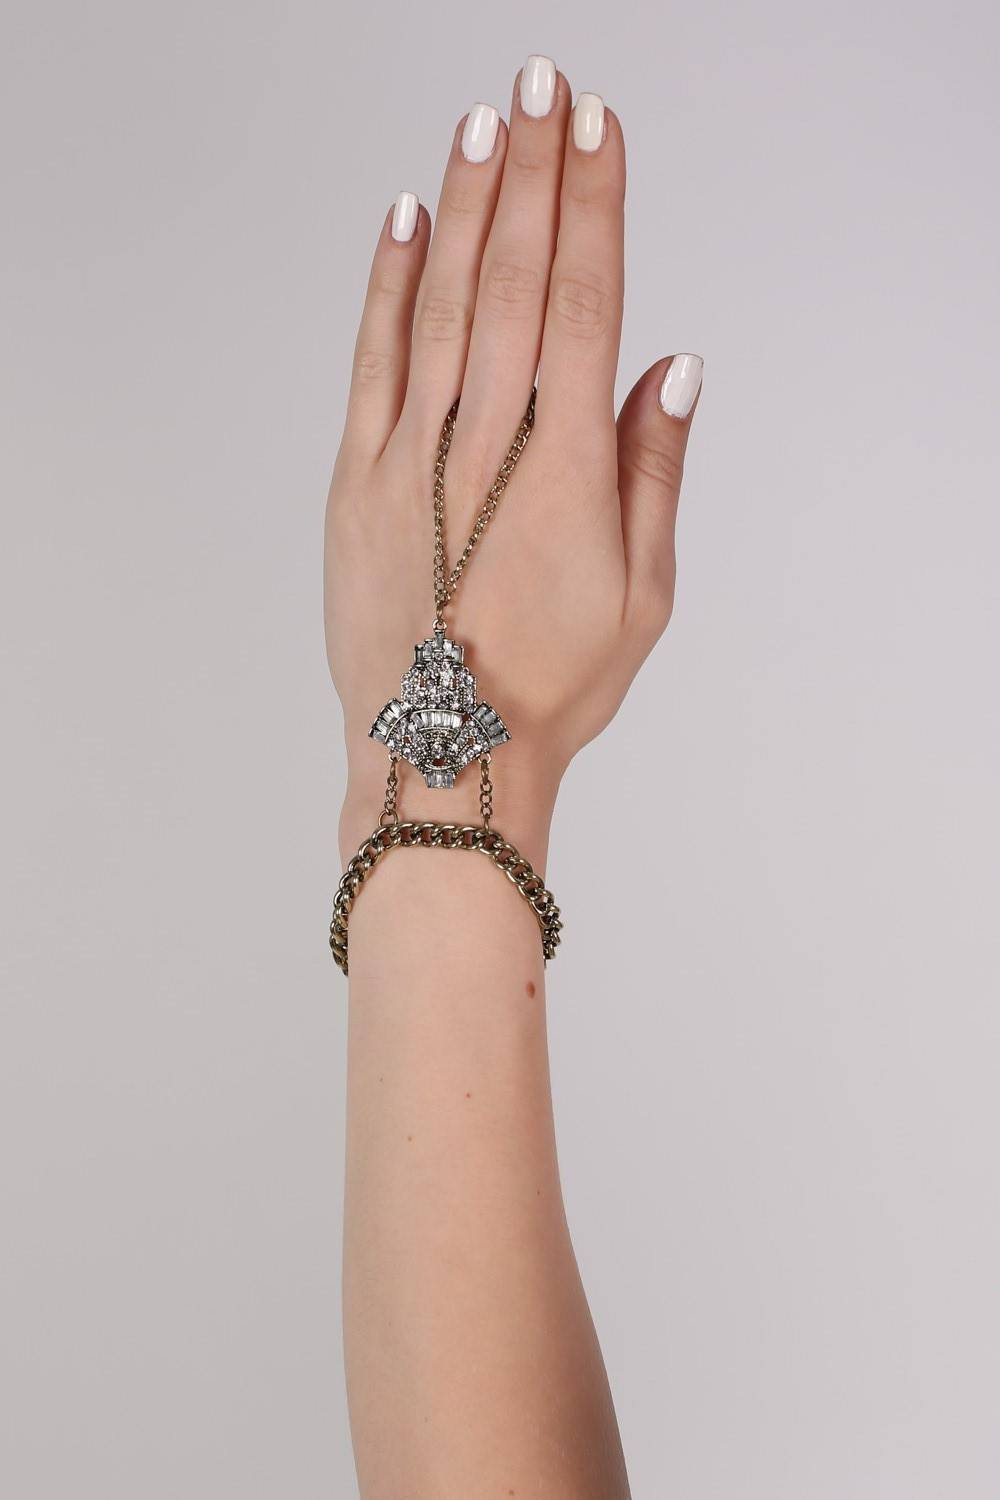 Jewel Bracelet Hand Harness in Gold 0